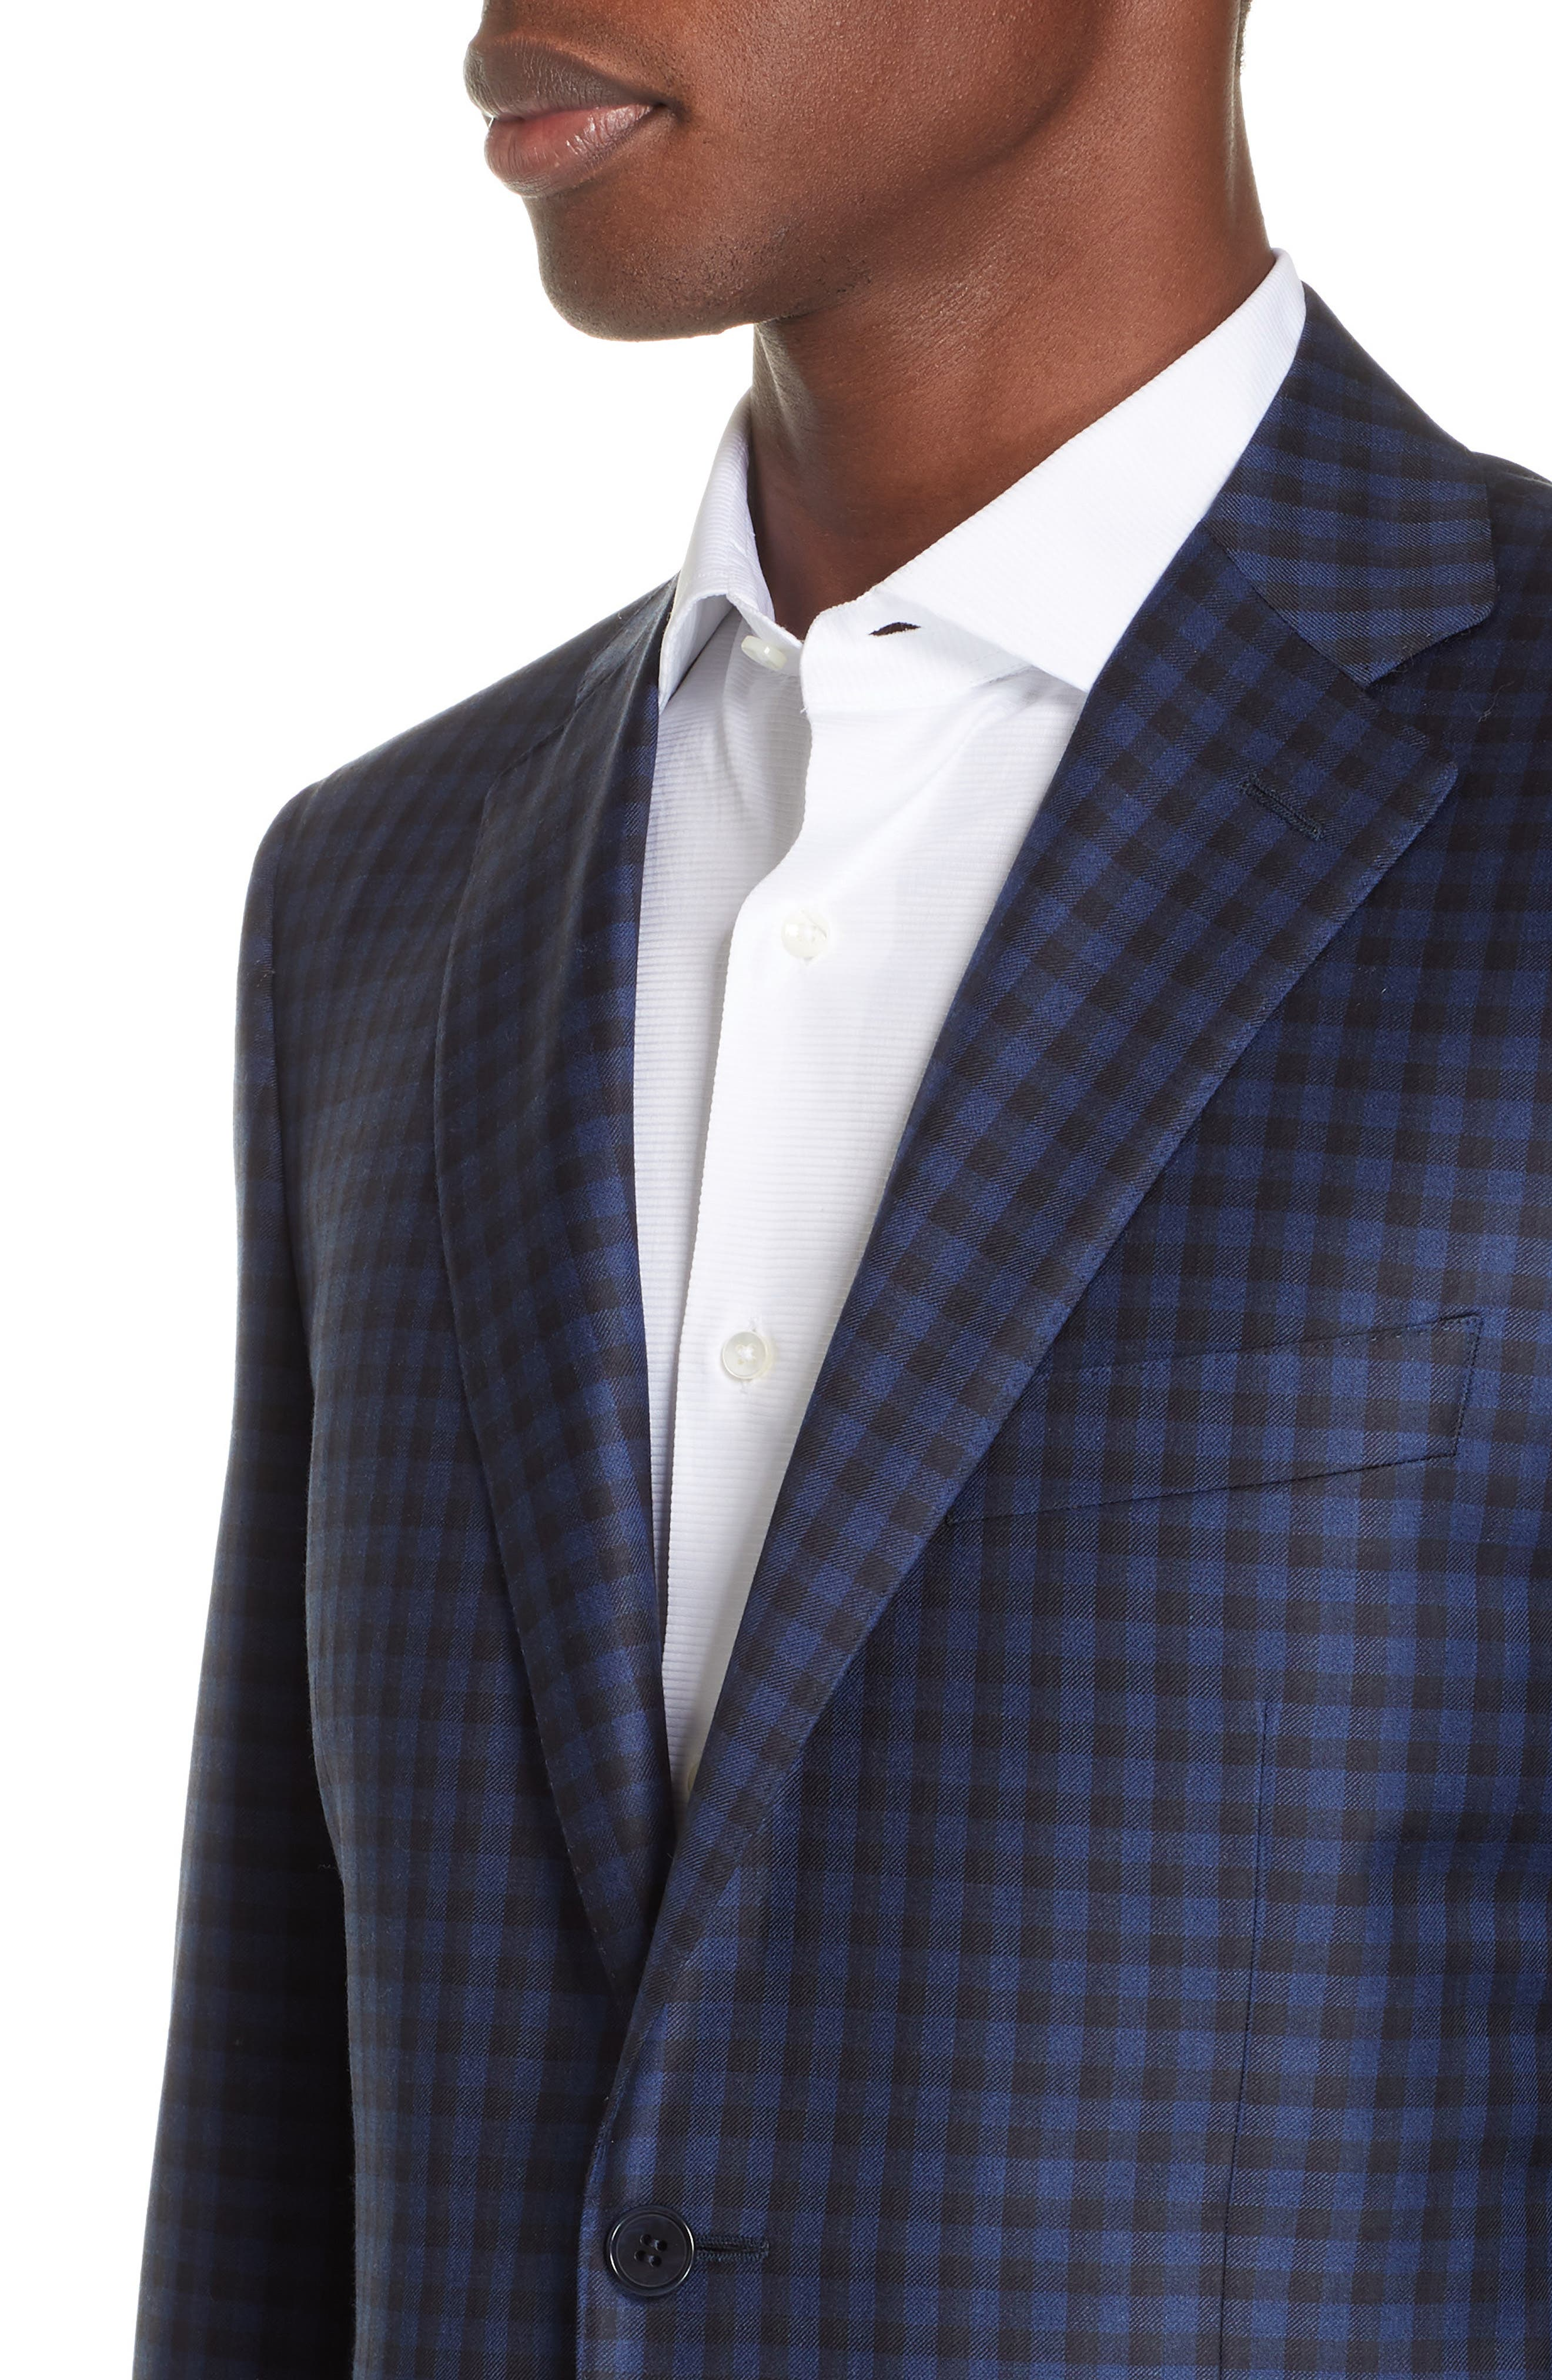 CANALI, Classic Fit Check Wool Sport Coat, Alternate thumbnail 4, color, BLUE